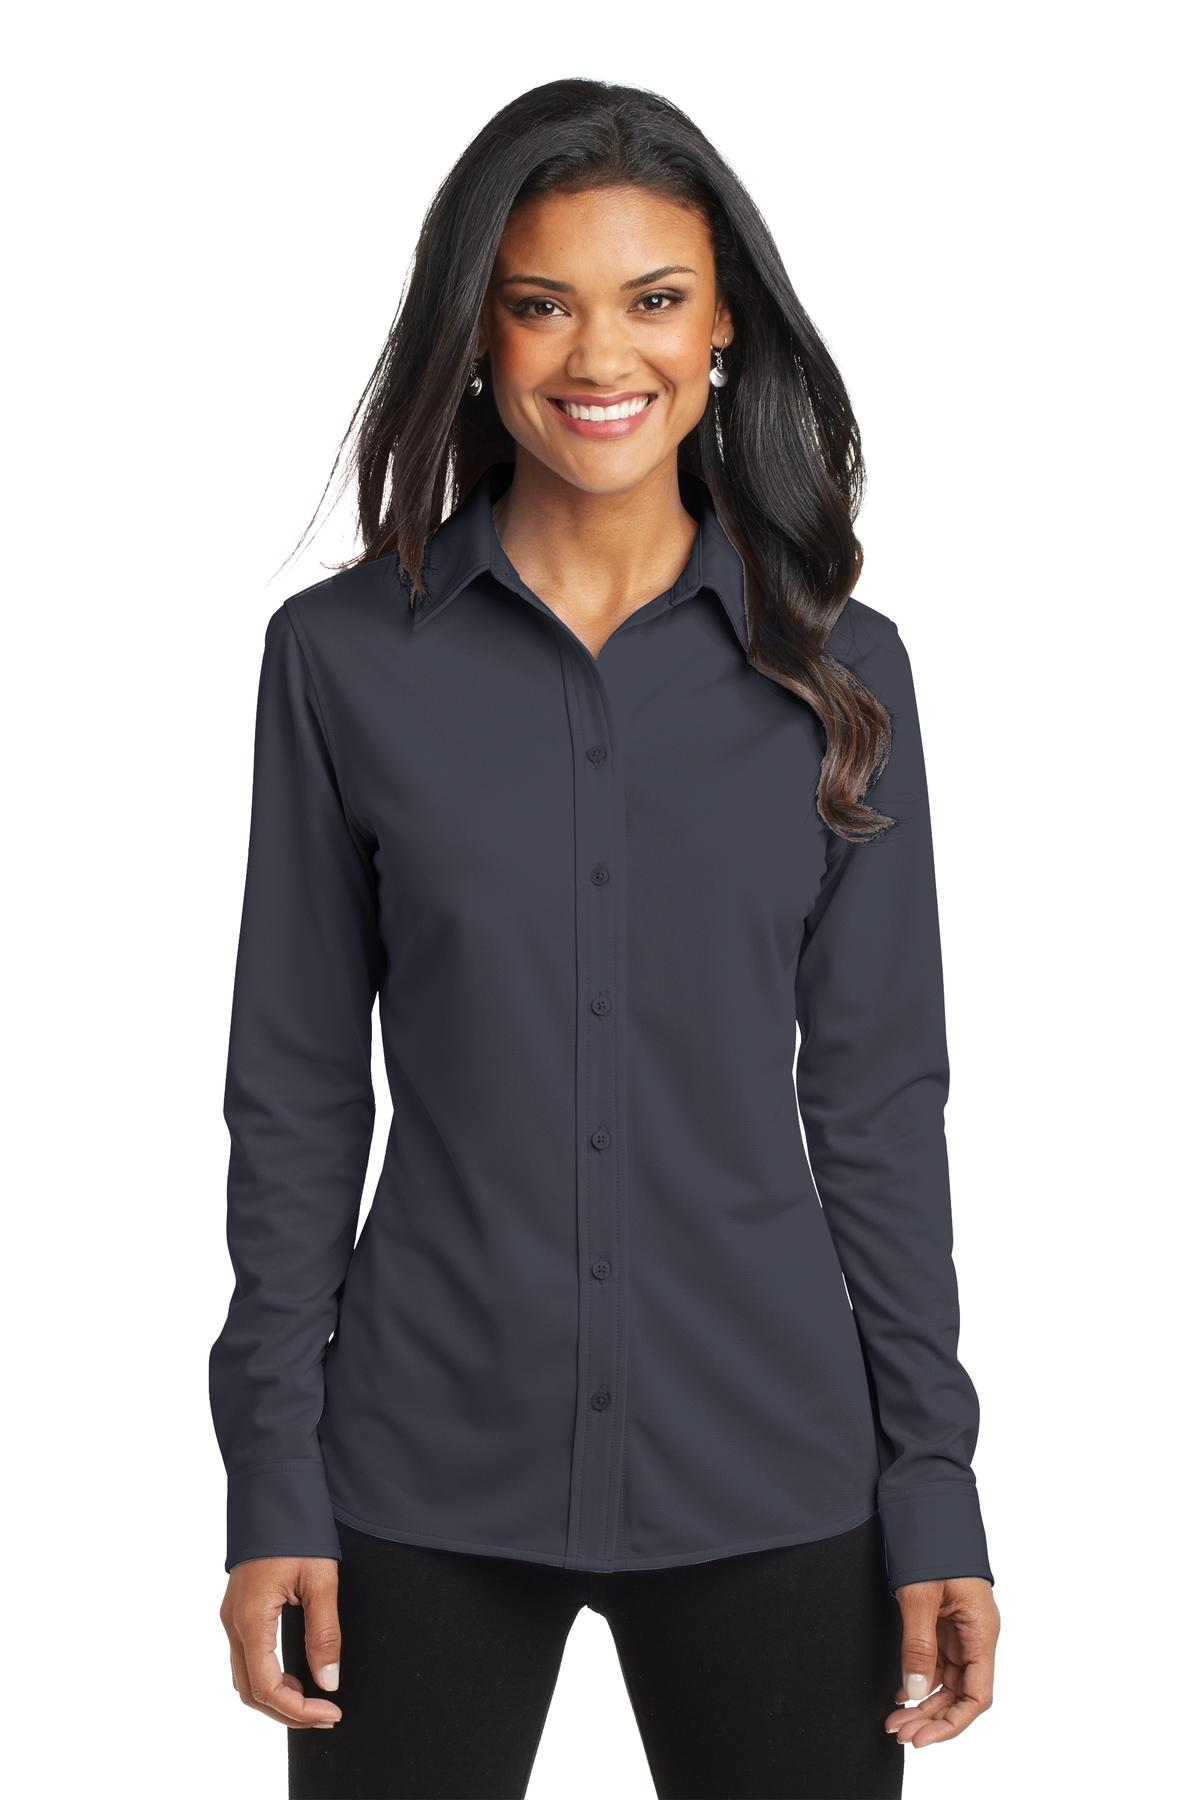 Port Authority ®  Ladies Dimension Knit Dress Shirt. L570 - Battleship Grey